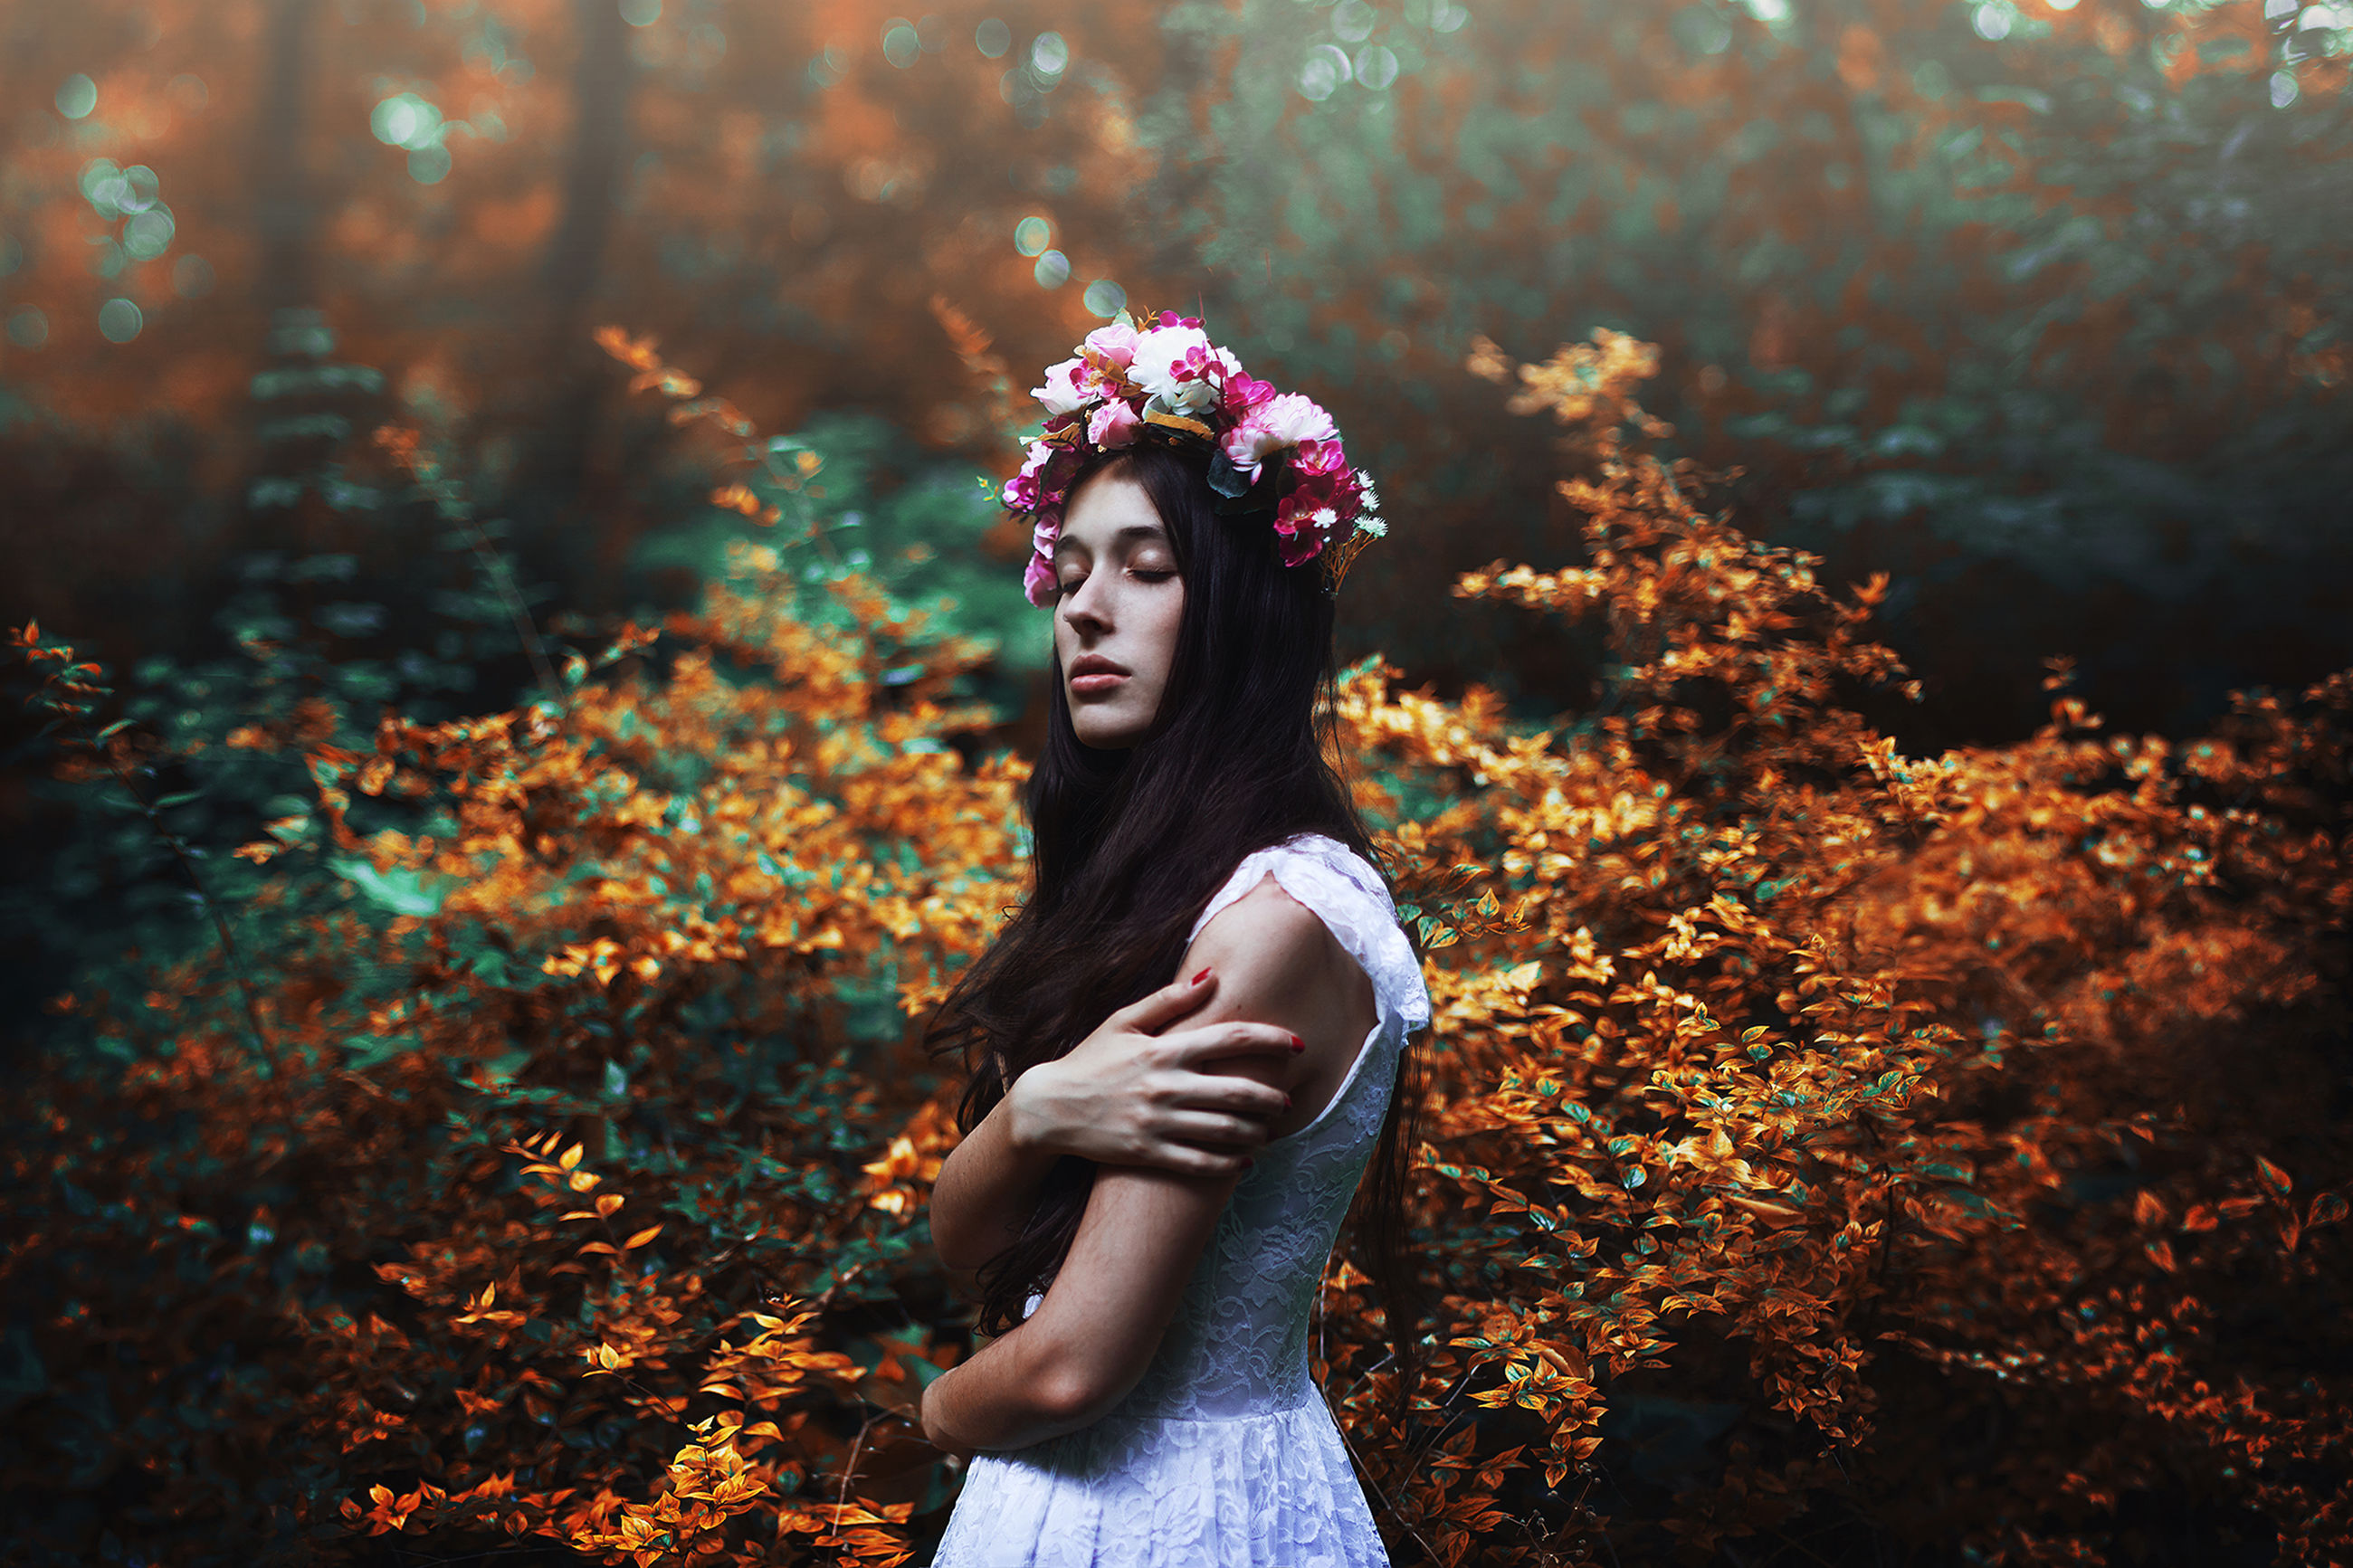 young adult, lifestyles, person, young women, leisure activity, tree, casual clothing, standing, looking at camera, front view, portrait, long hair, autumn, smiling, flower, three quarter length, dress